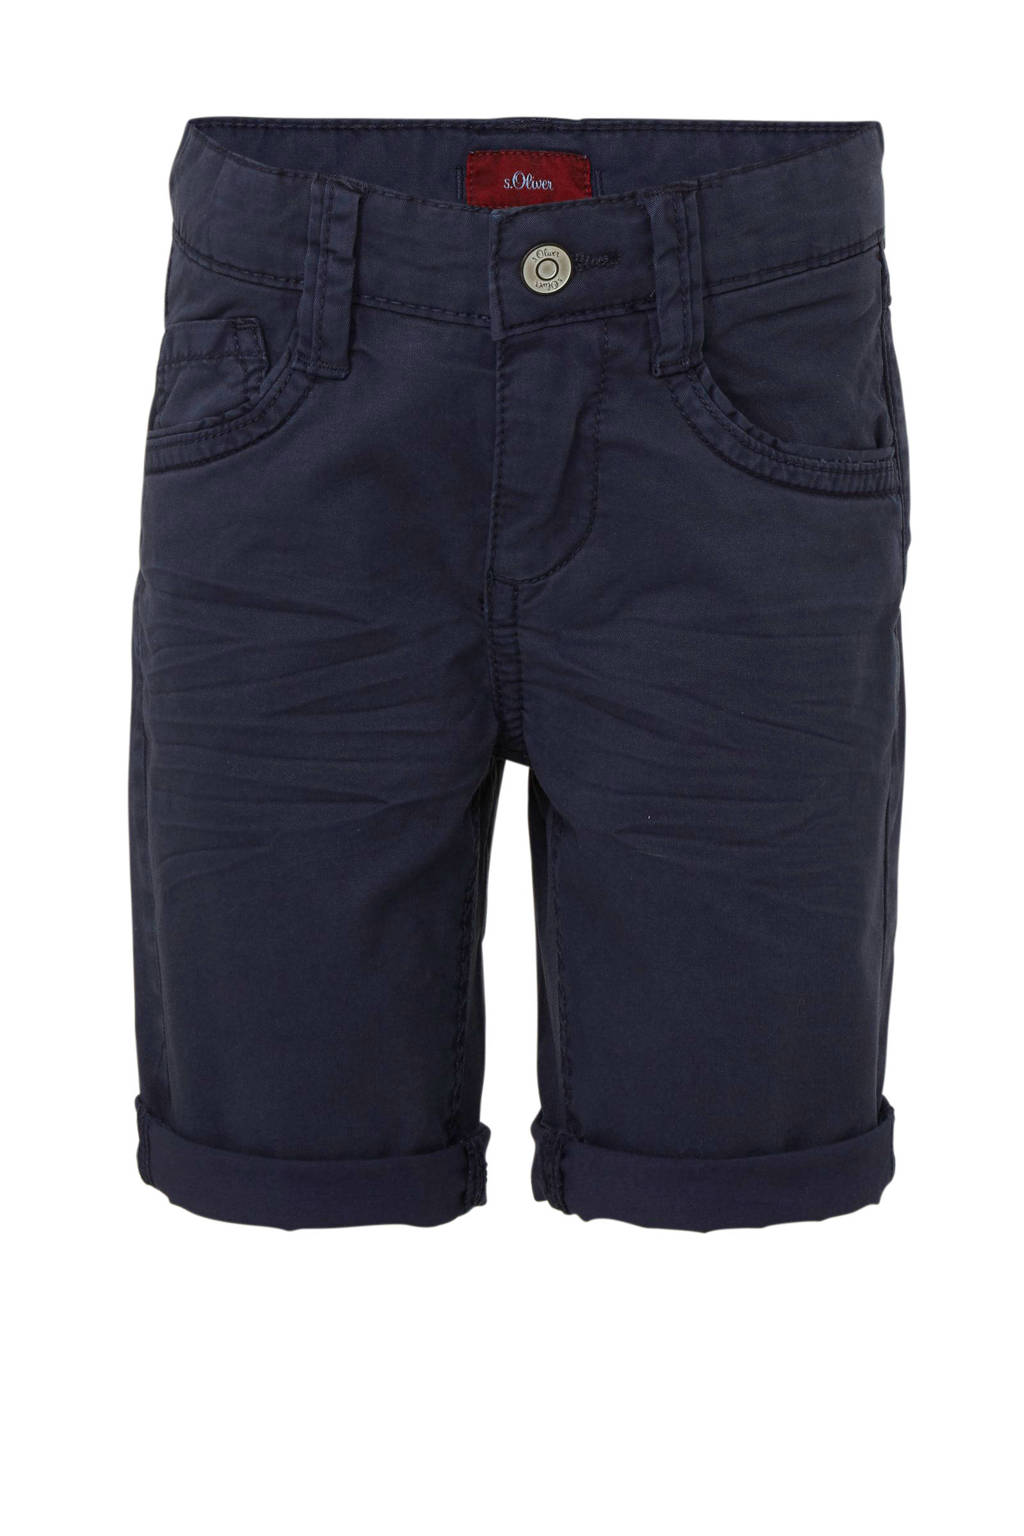 s.Oliver slim fit short donkerblauw, Donkerblauw